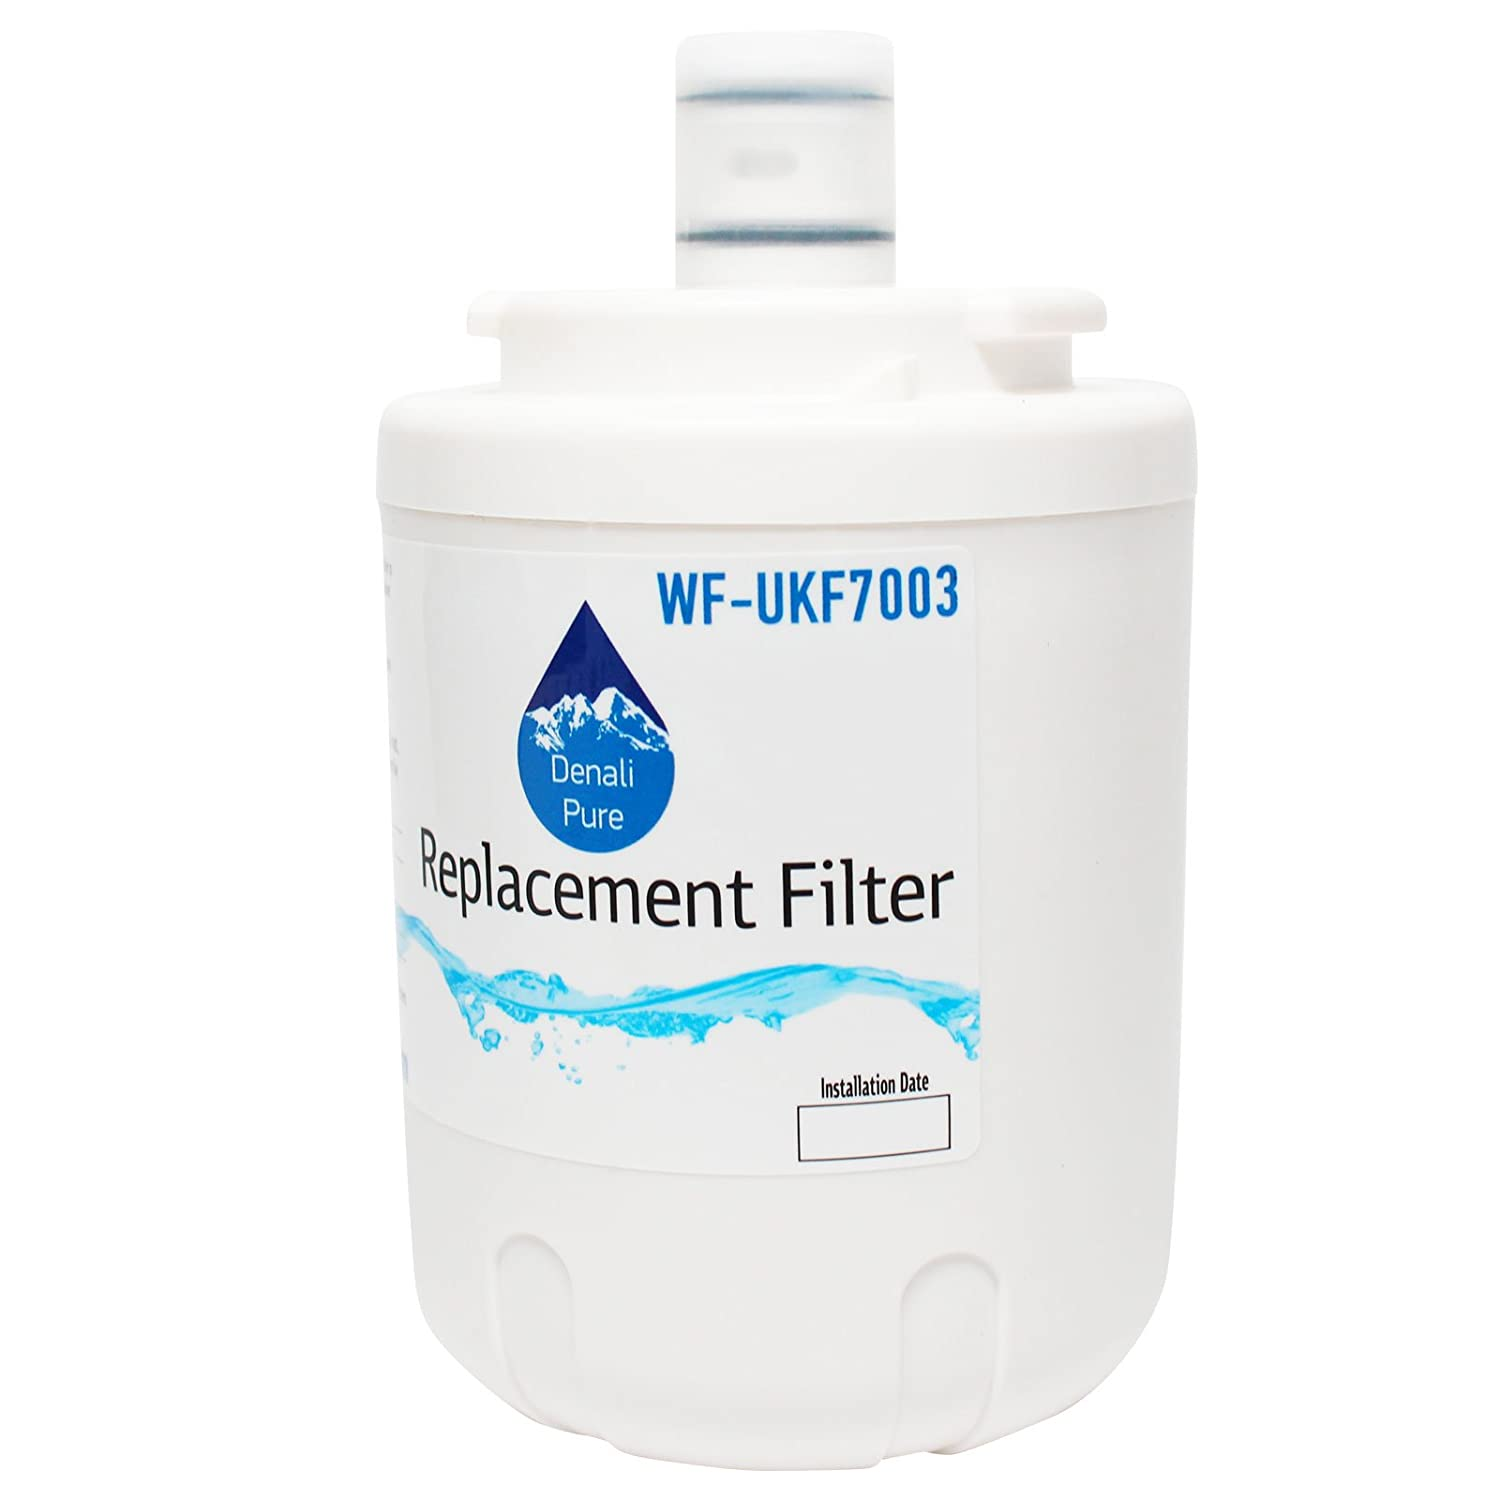 Amazon.com: 3-Pack Replacement UKF7003 Water Filter for Maytag, Jenn-Air,  Dacor Refrigerators - Compatible with Maytag UKF7003, Jenn-Air JCD2389GES,  ...